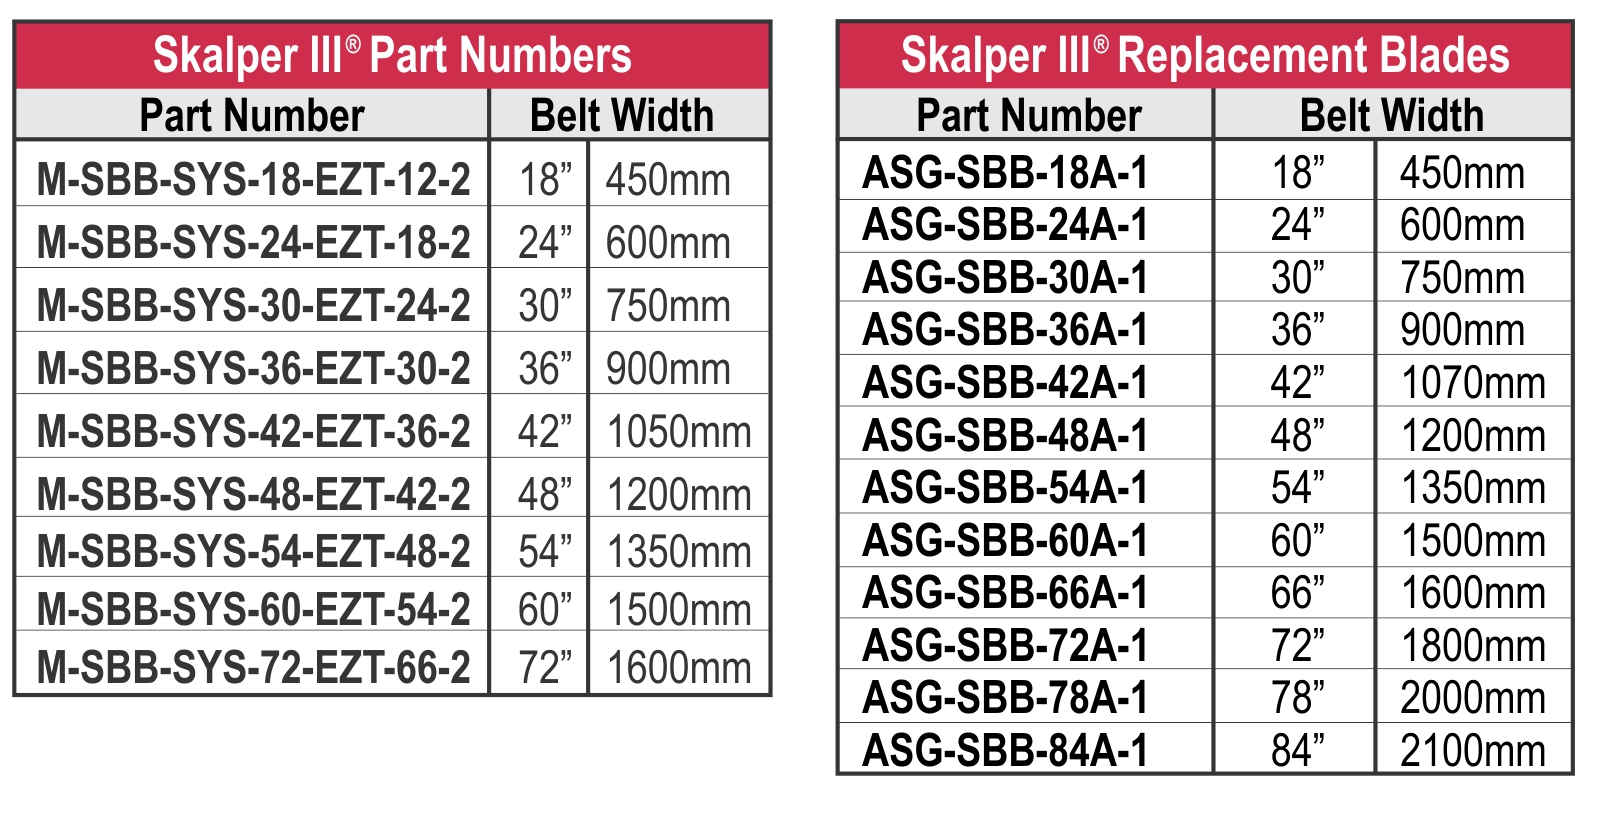 Skalper III  PN and B Chart-rev10-14